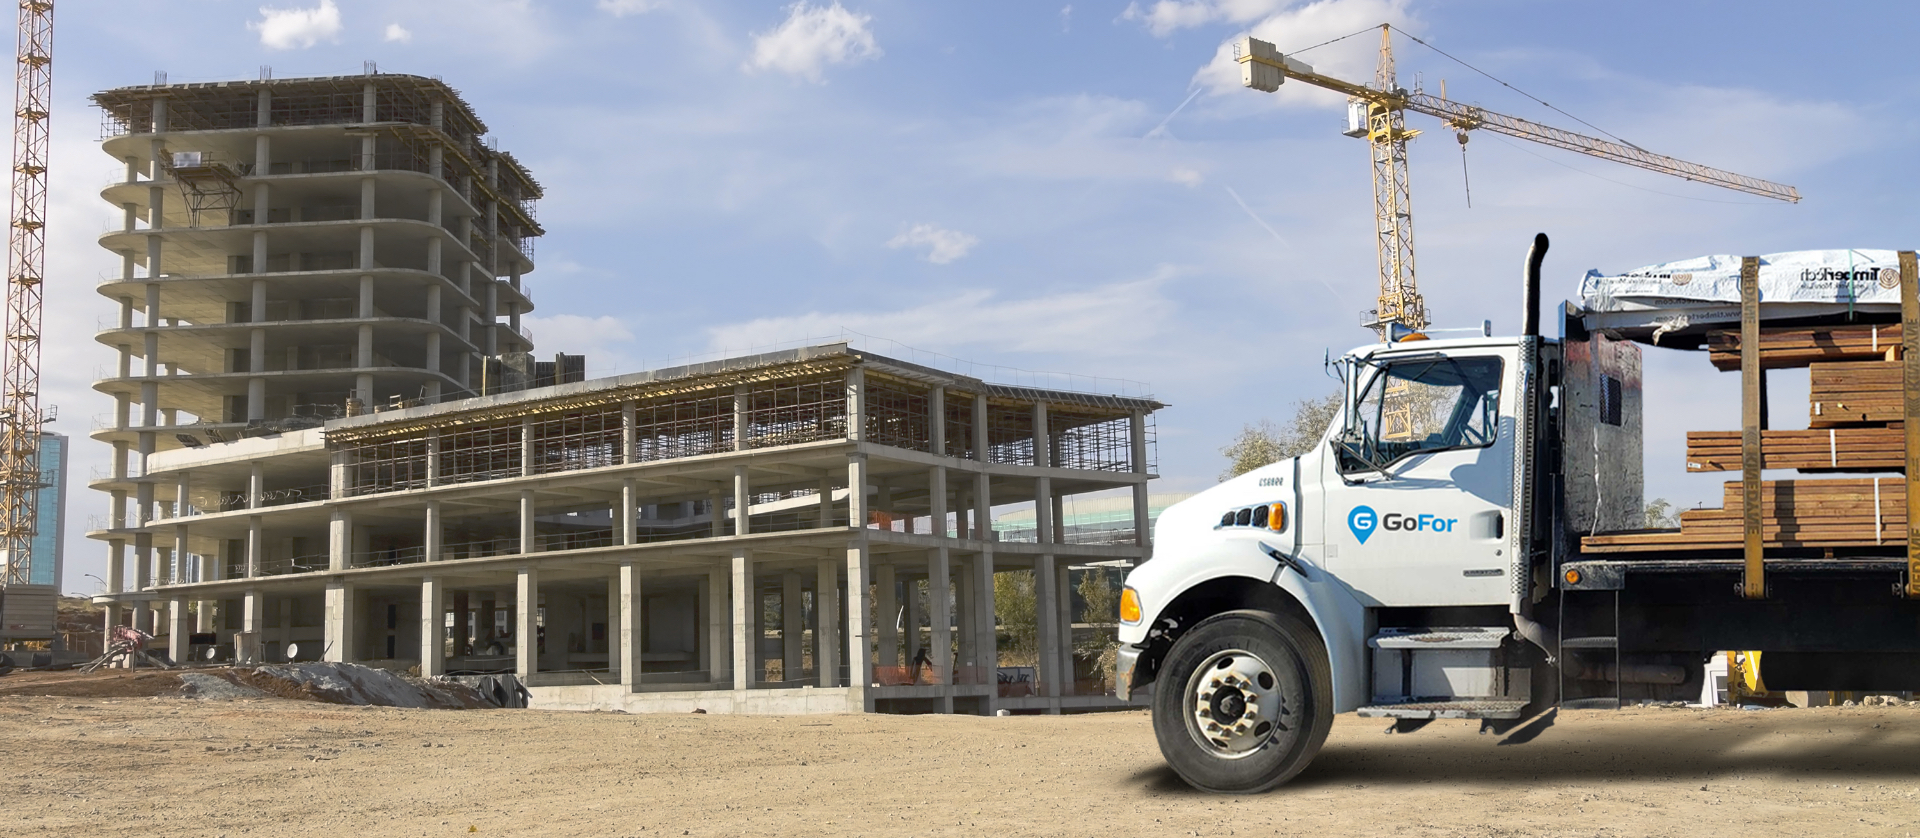 Why Should You Outsource Jobsite Delivery of Building Materials to A Professional?